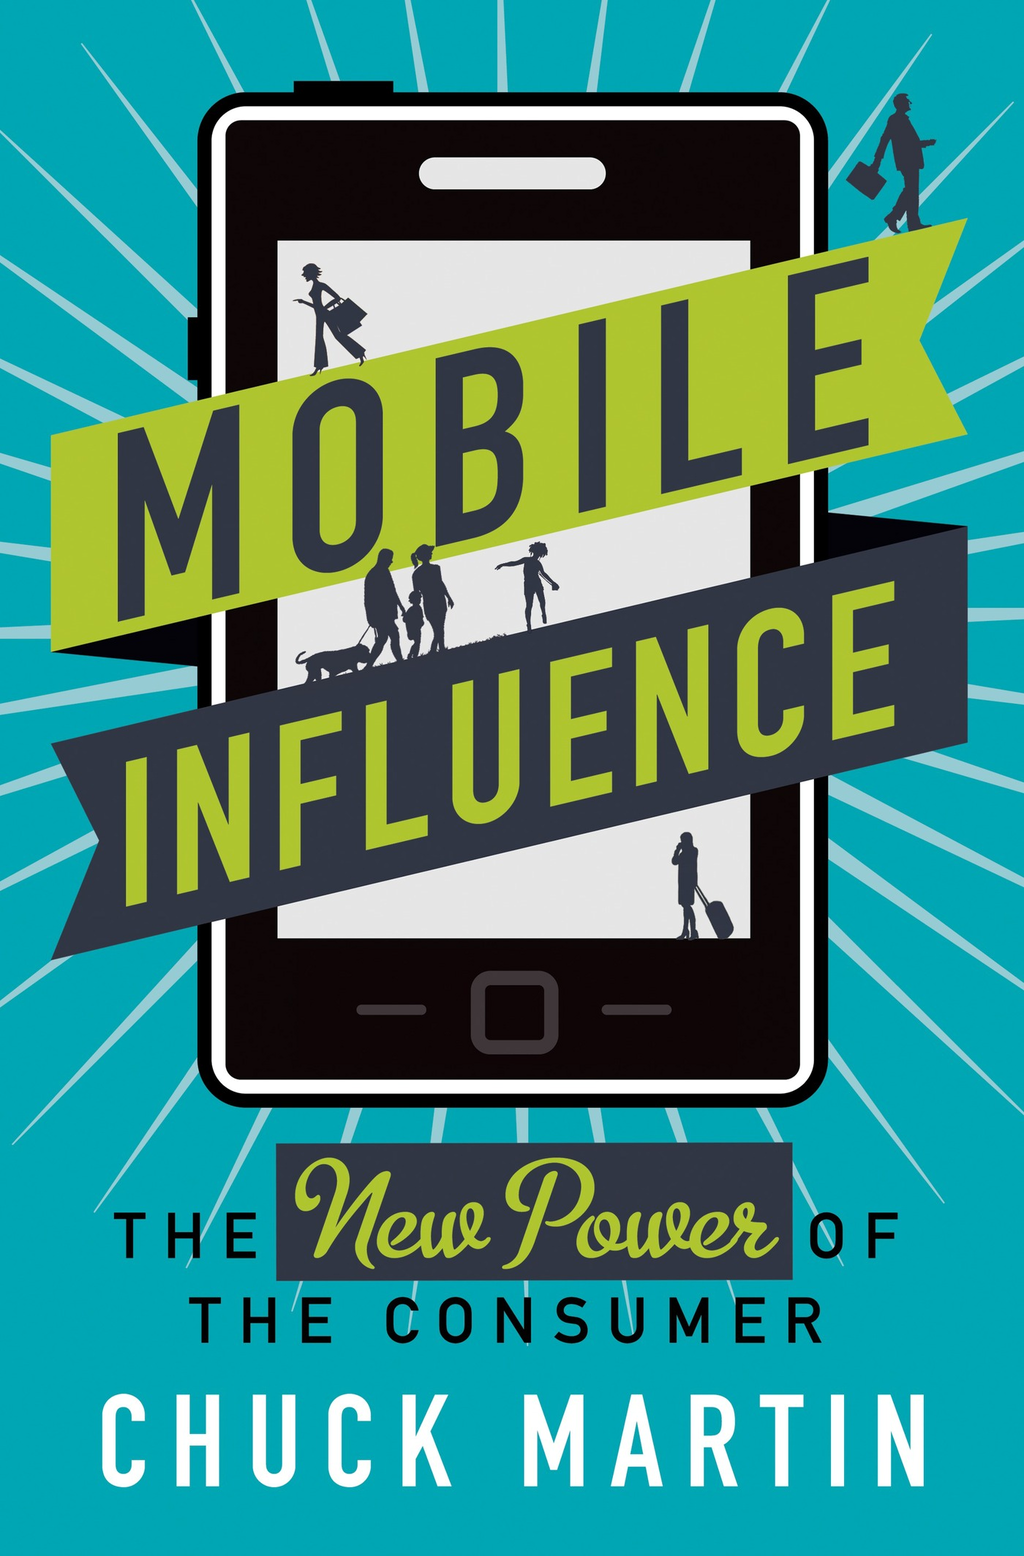 Mobile Influence